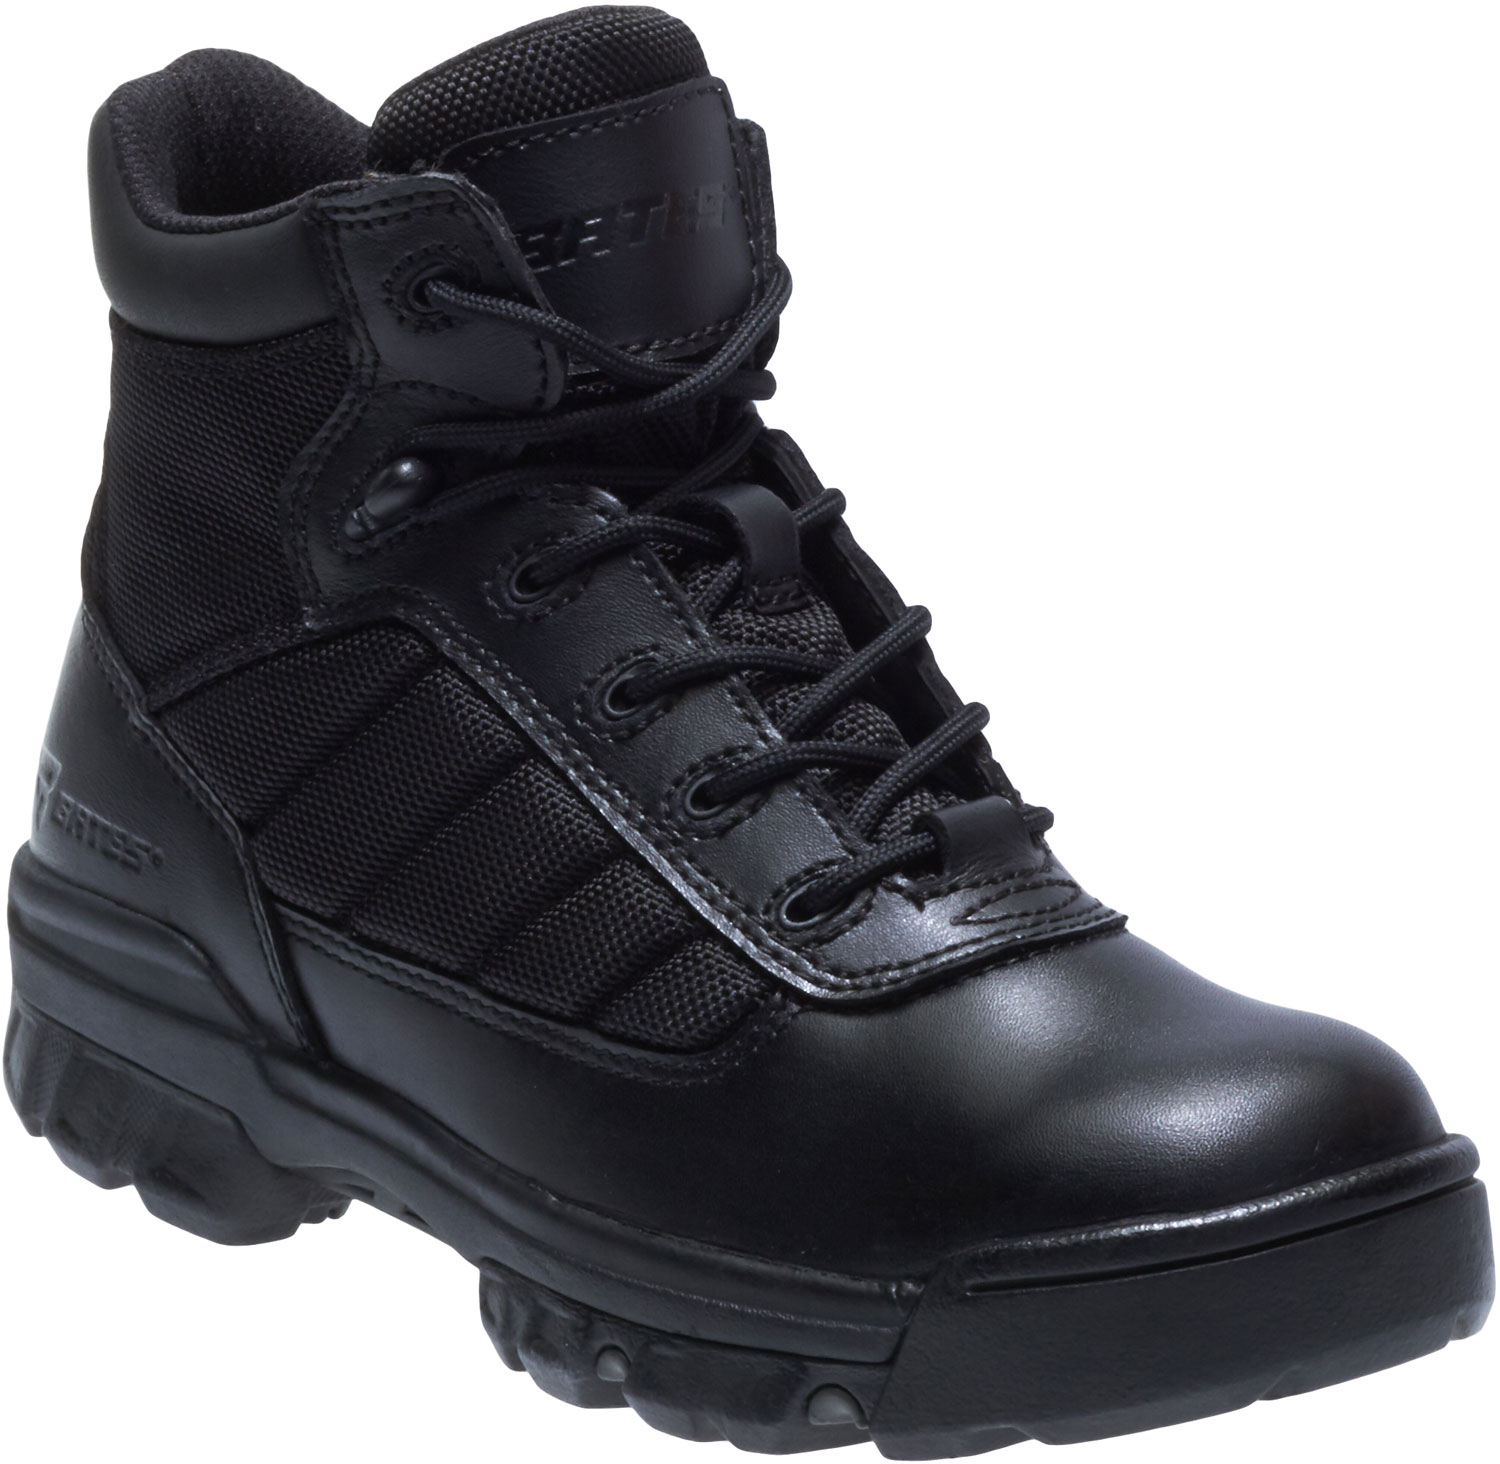 932218038d9 Bates Black 5 Inch Tactical Boot Women's